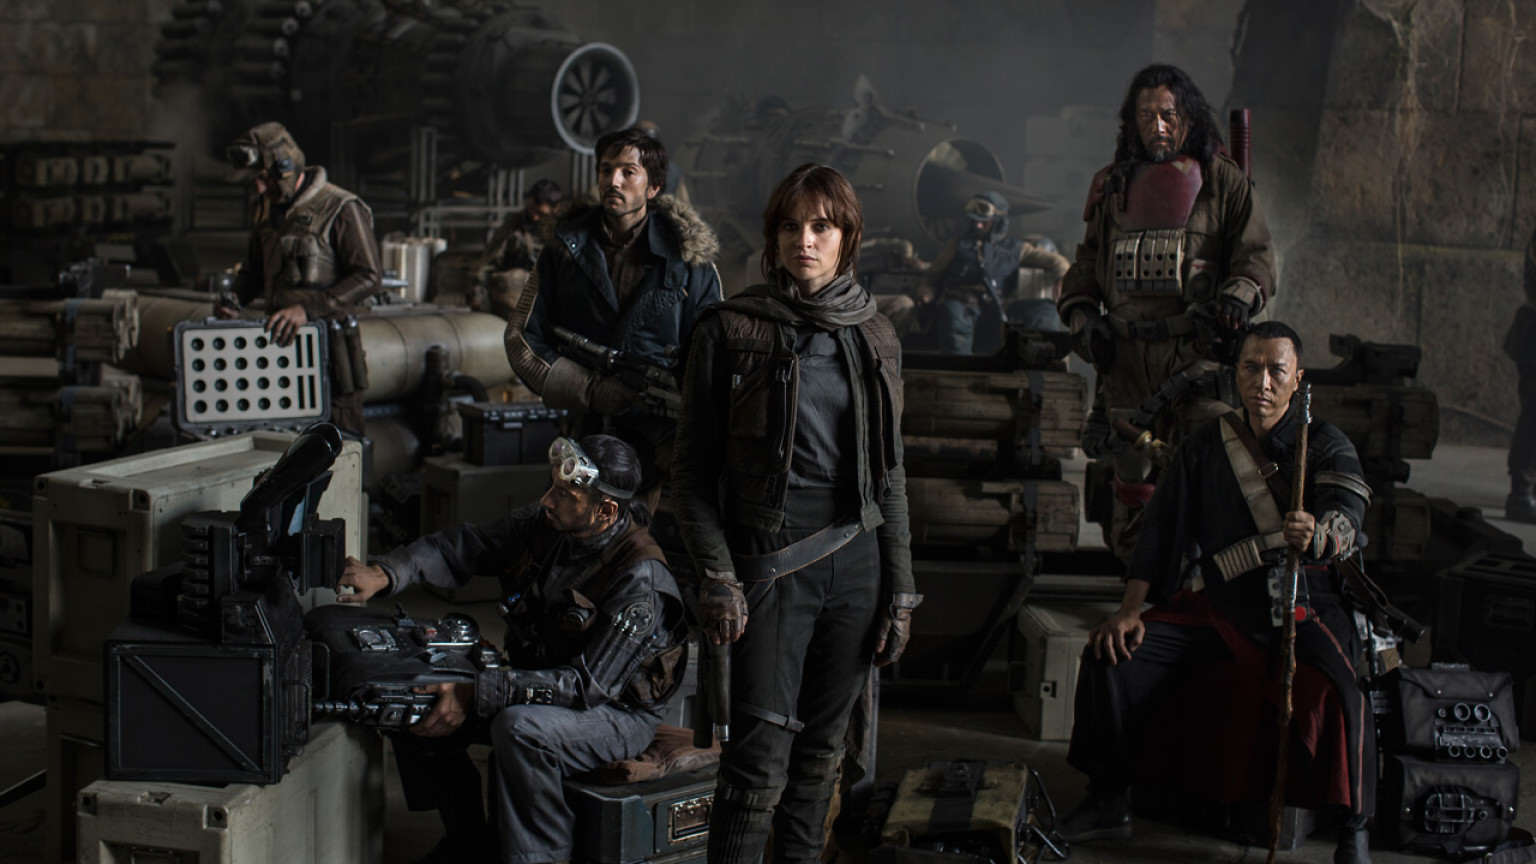 Rogue One: A Star Wars Story Teaser Leaked Online rogue one cast photo d23 1536x864 521514304075